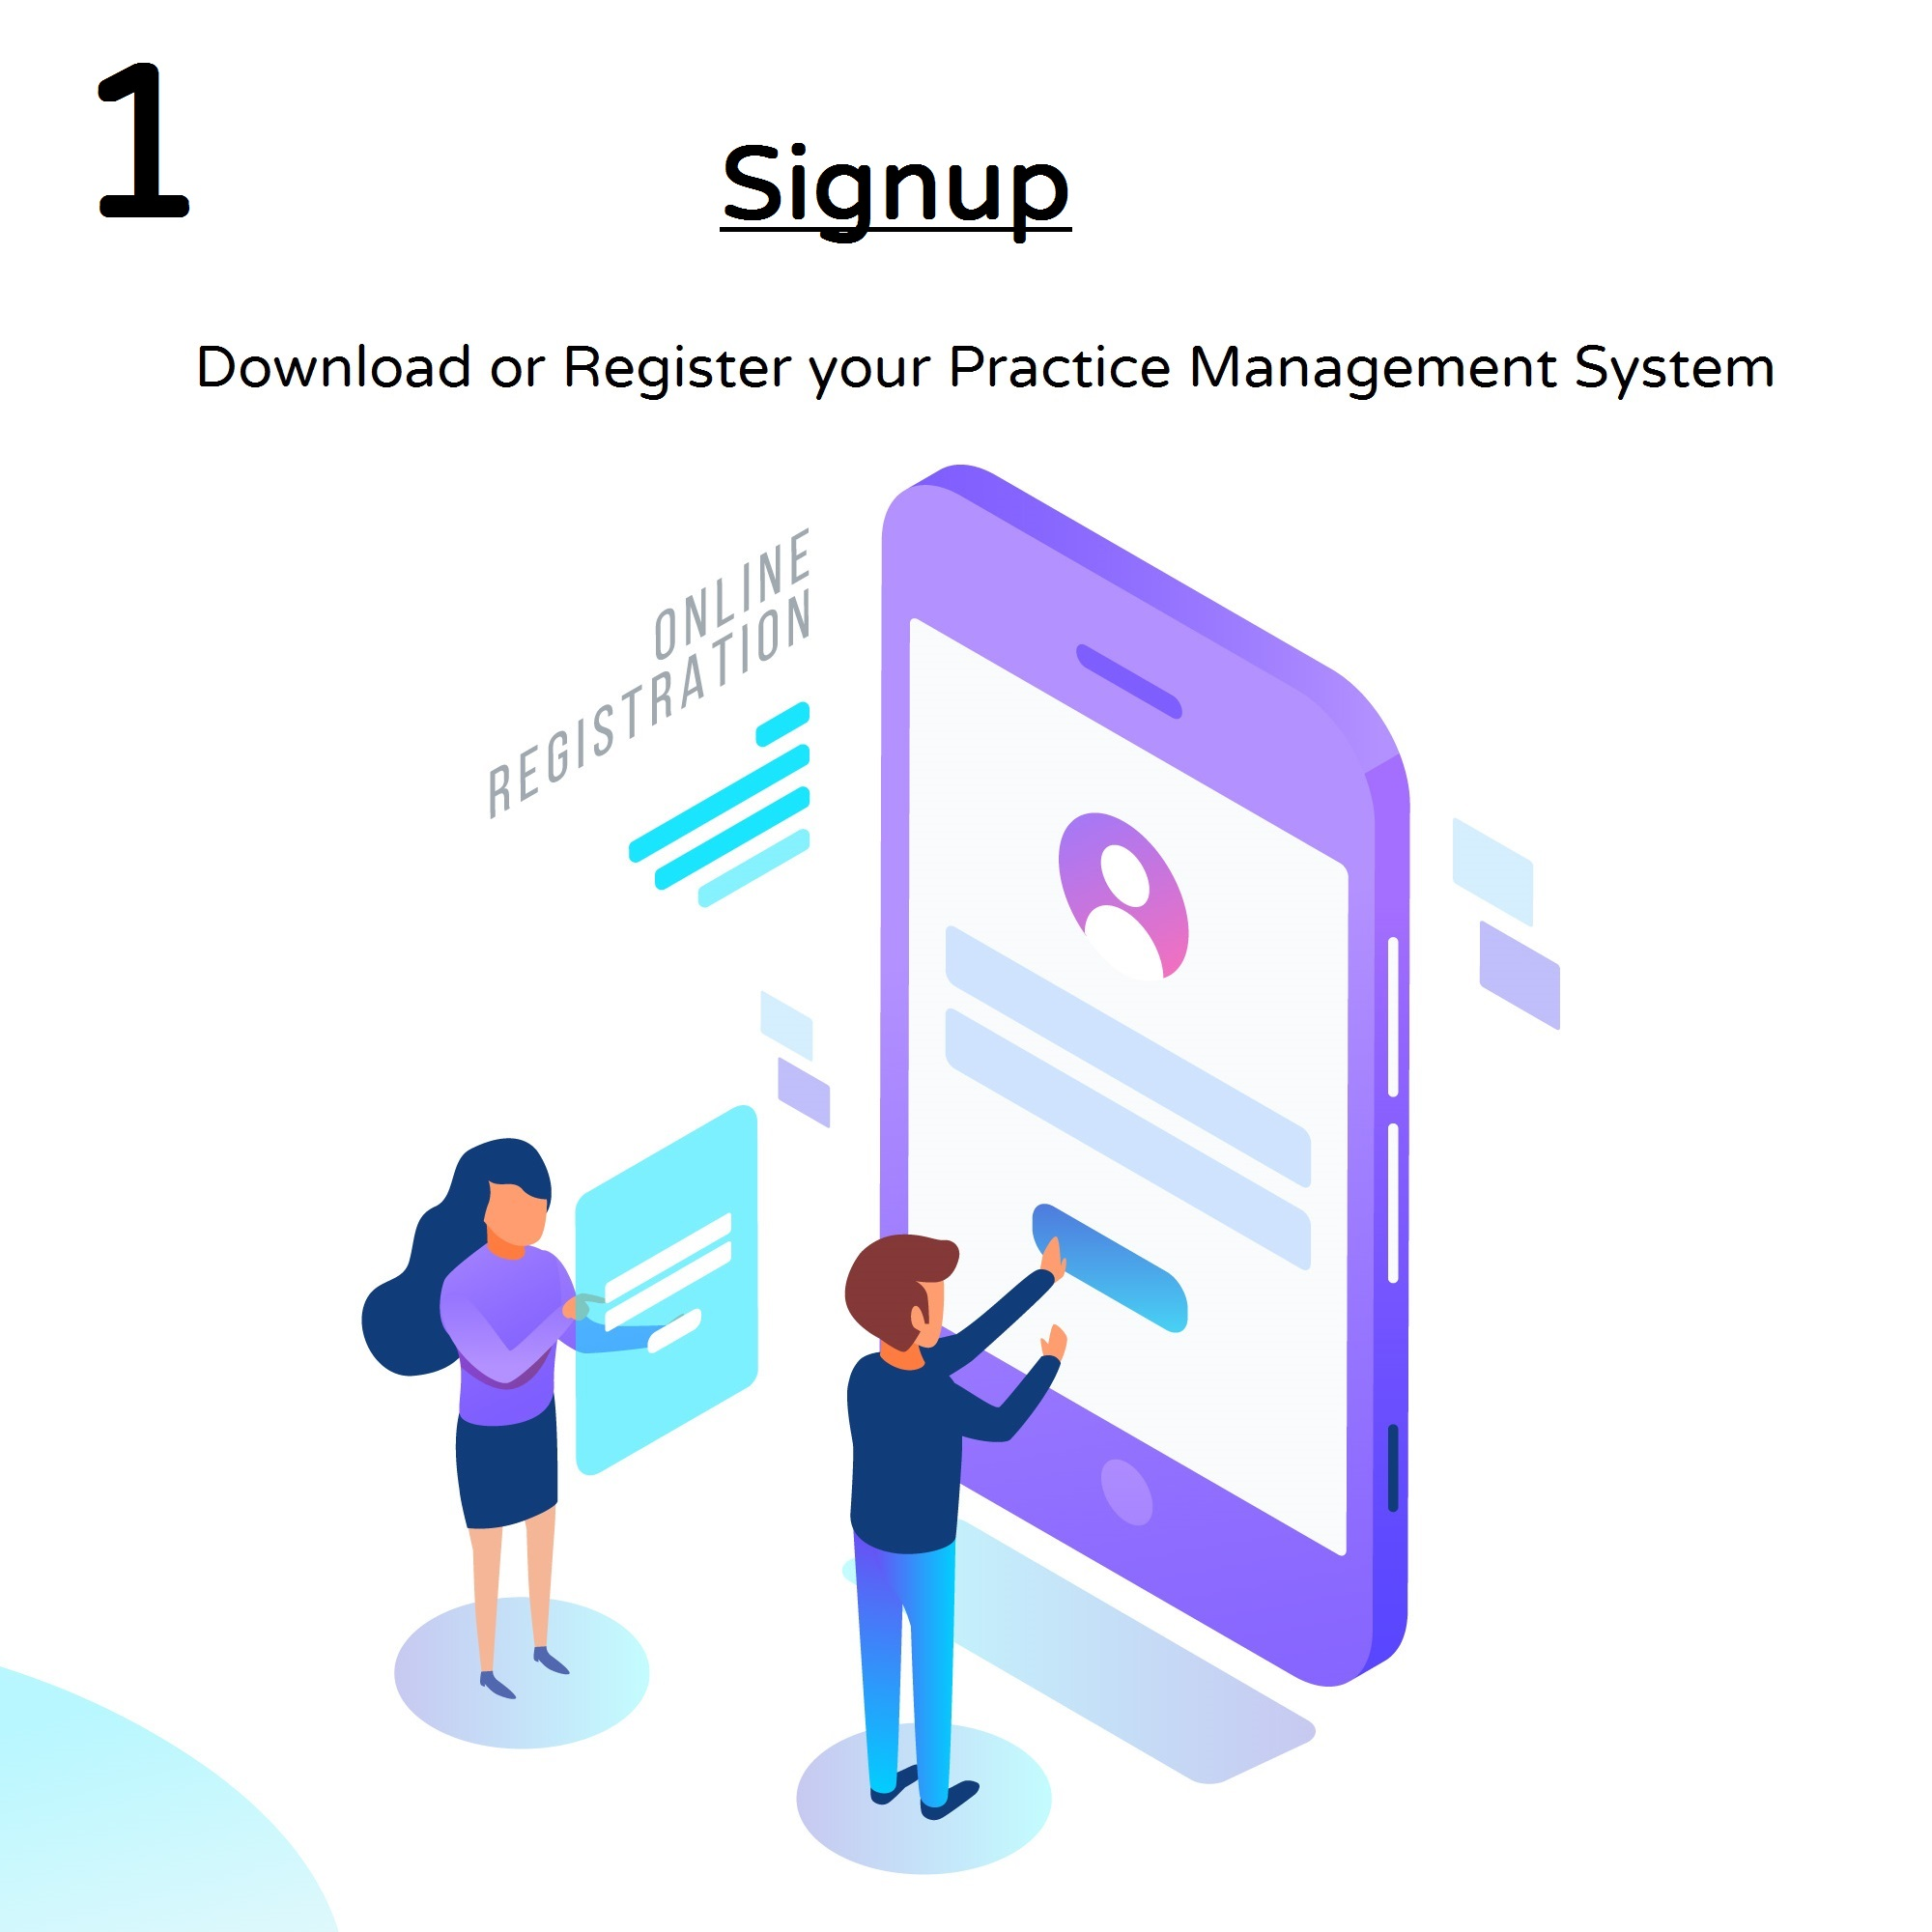 Signup image for practice management system